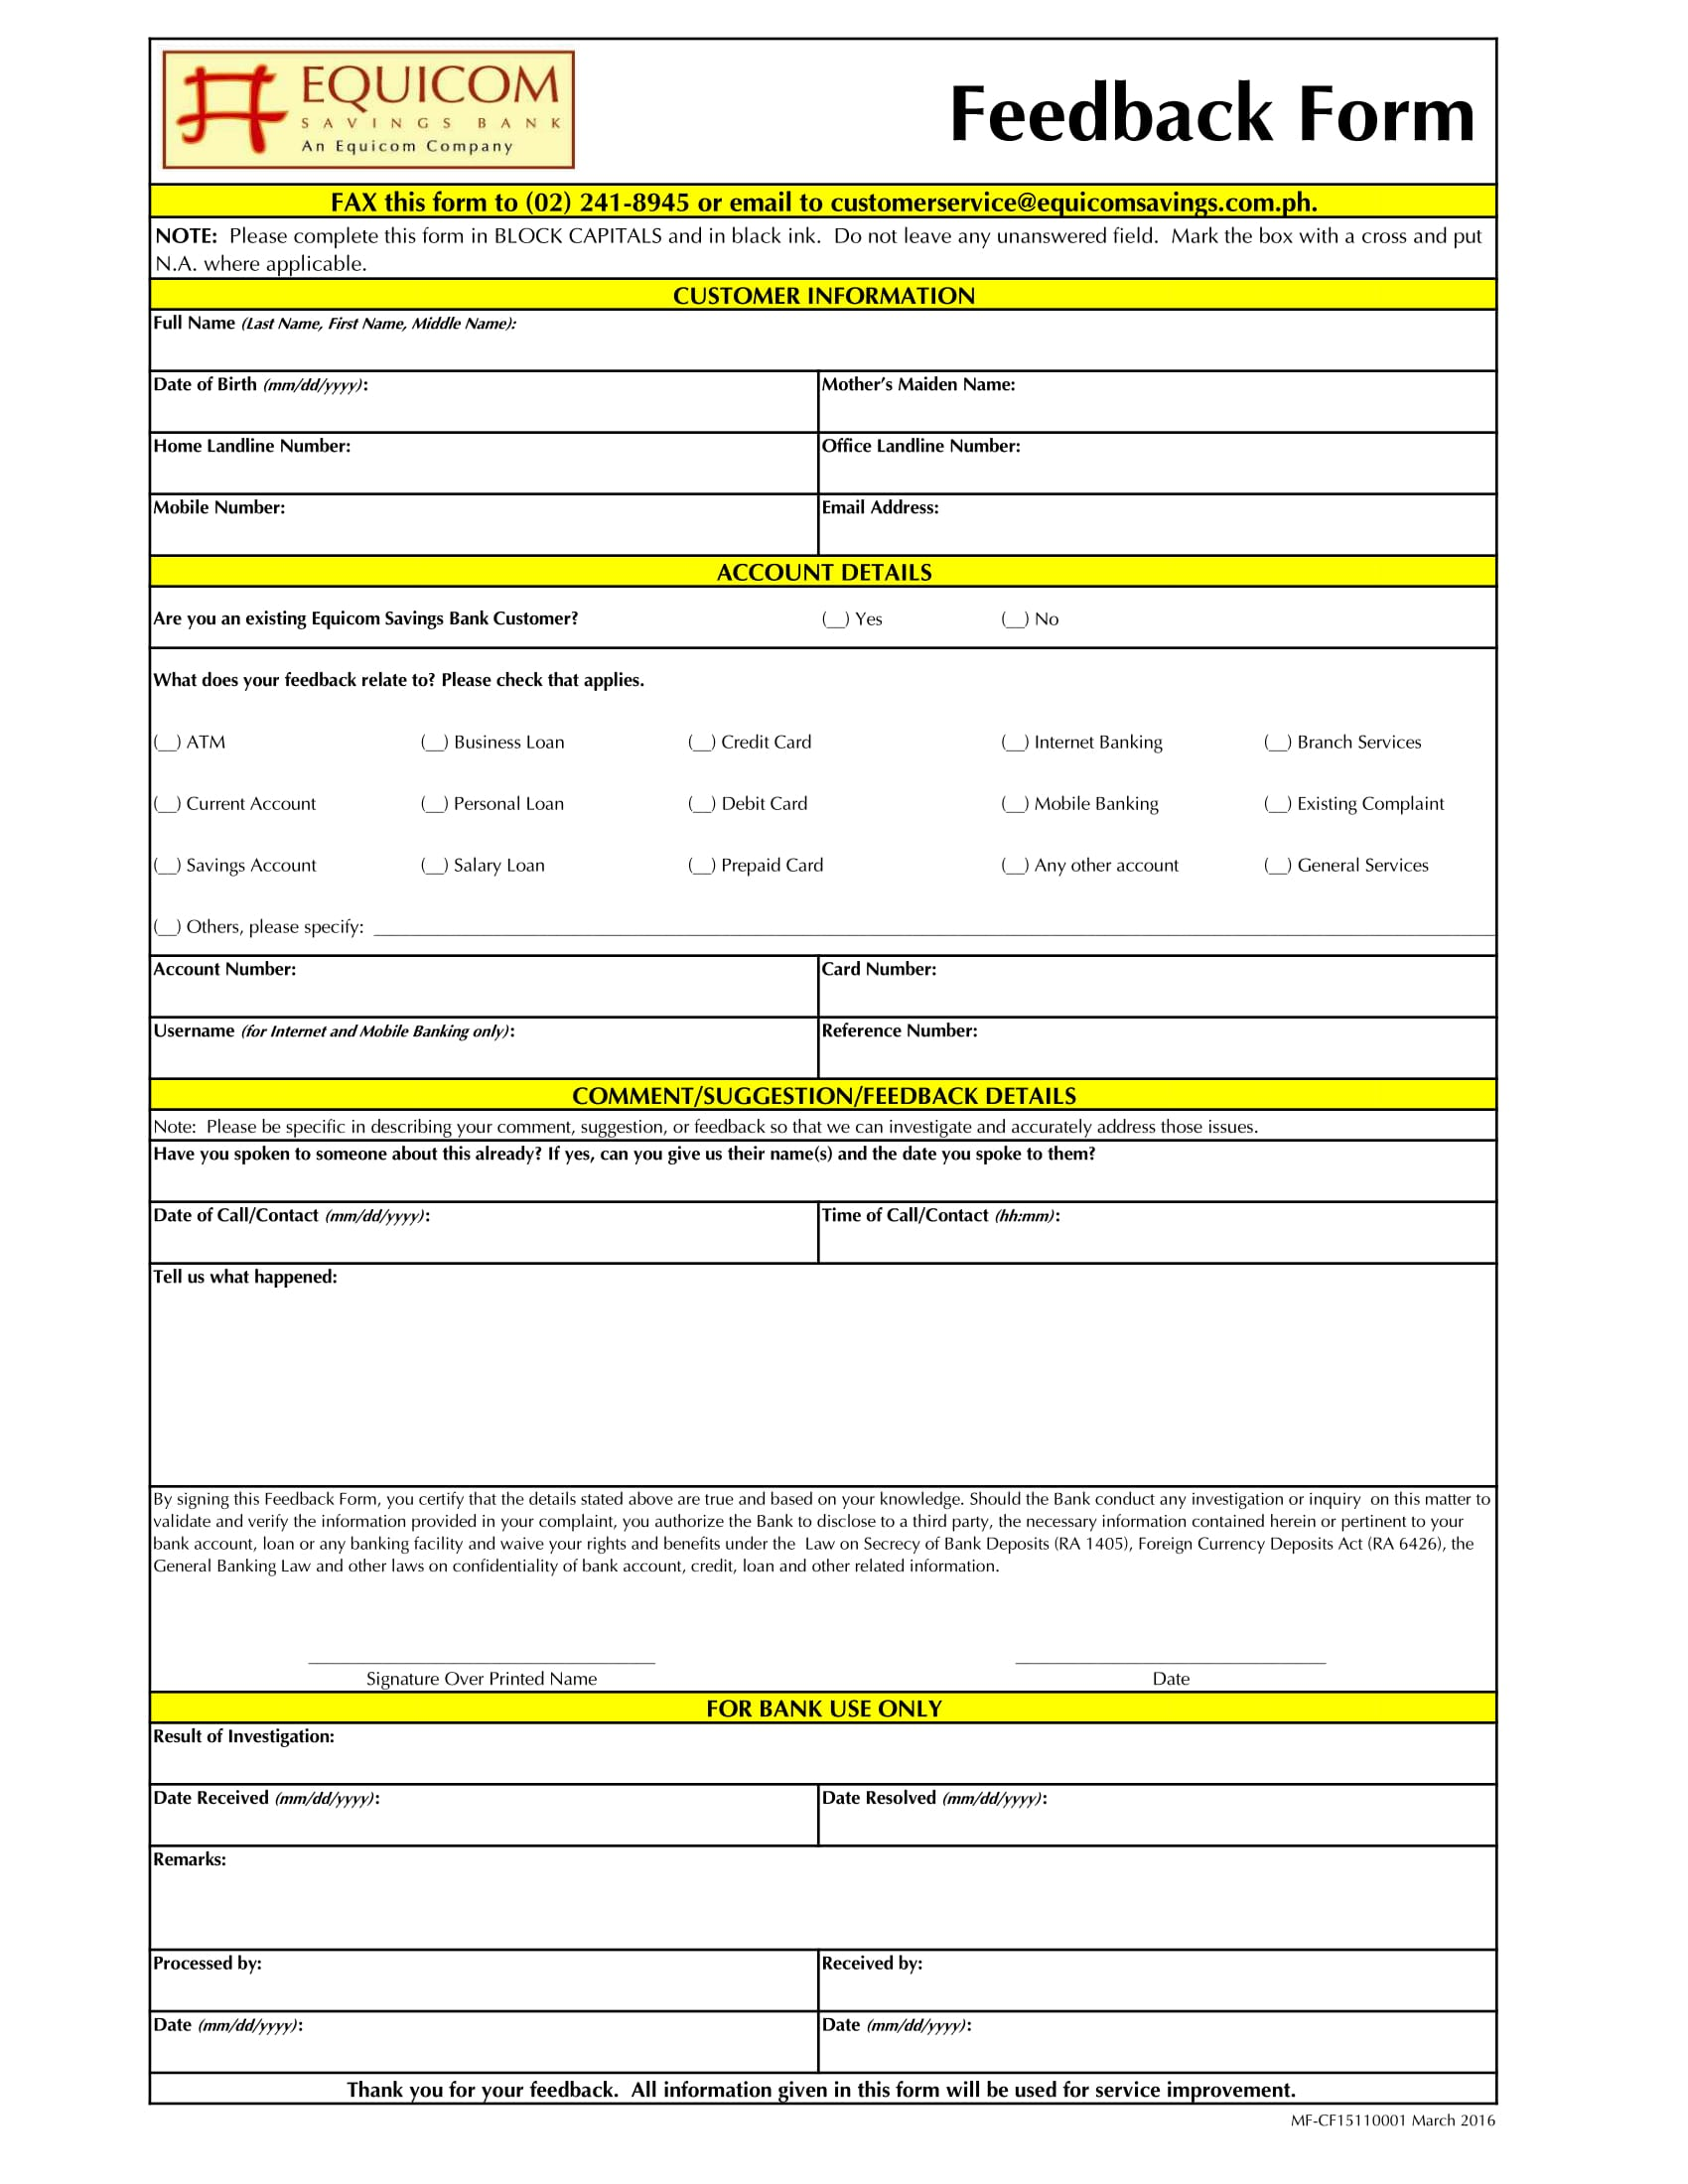 Wonderful 1 Year Experience Resume Format For Java Tiny 10 Best Resumes Clean 11 Vuze Search Templates 12 Piece Puzzle Template Young 18 Year Old Resumes Yellow2 Circle Label Template What To Include In Customer Feedback Forms